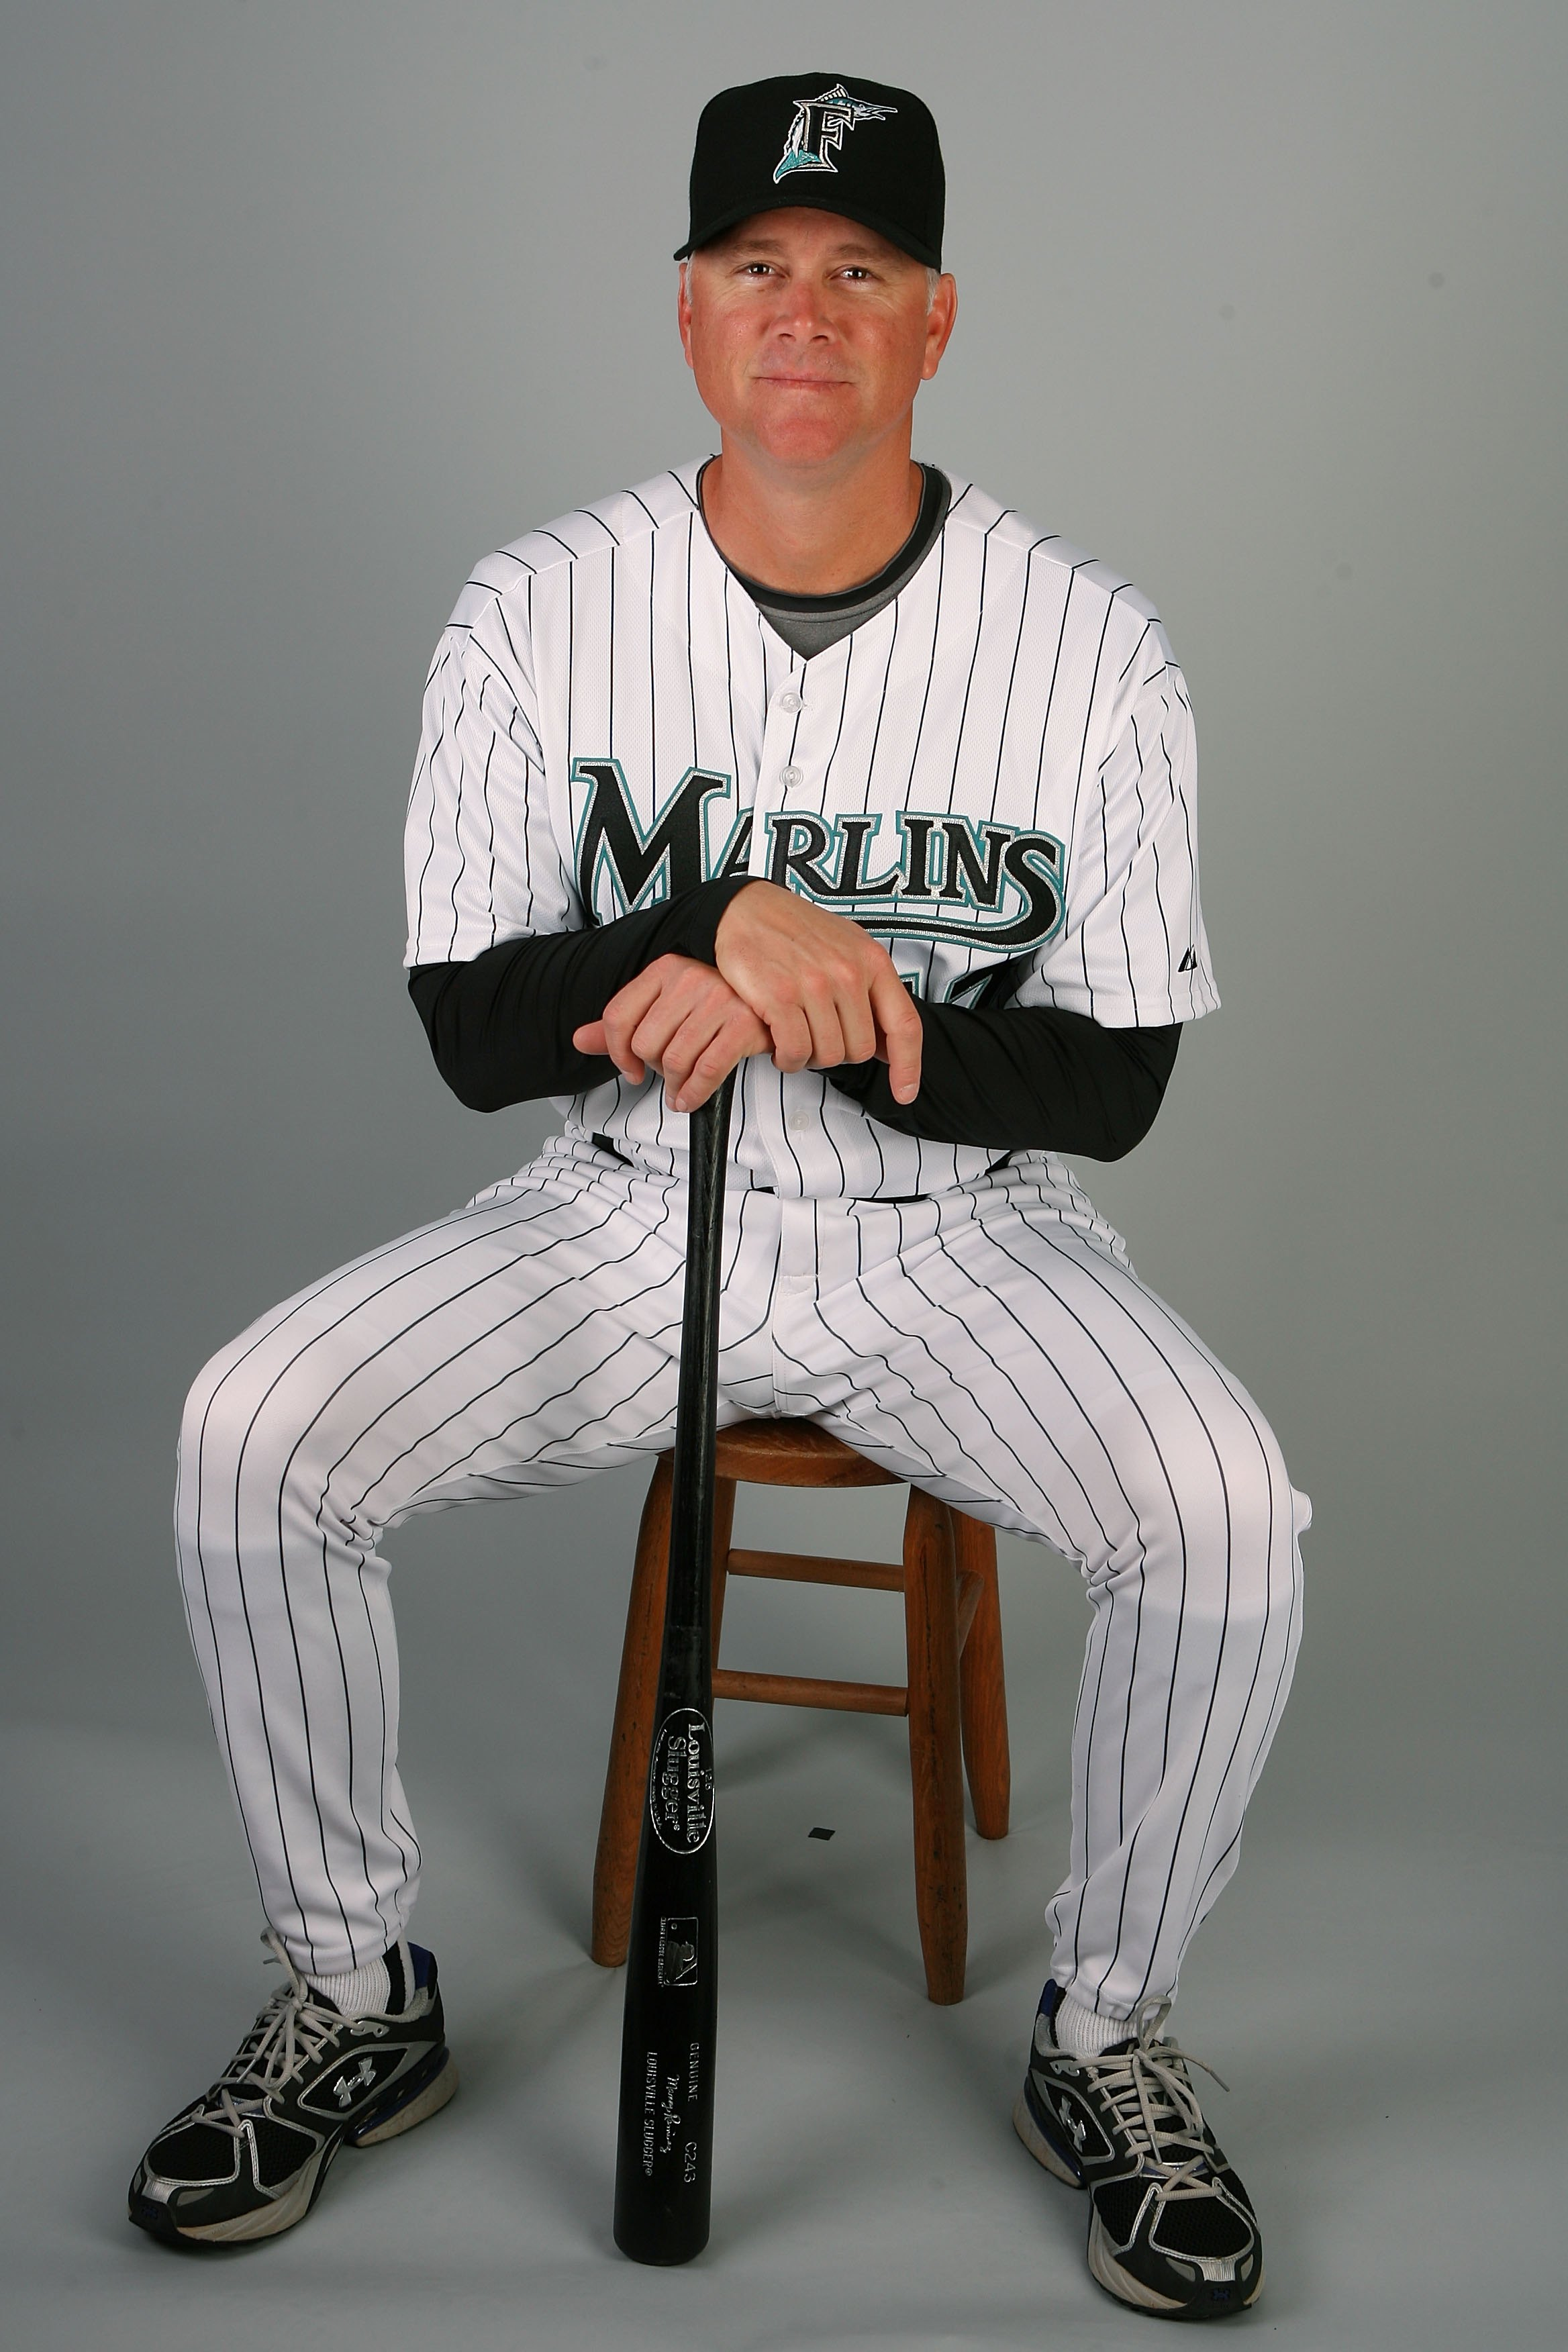 JUPITER, FL - MARCH 02:  Hitting coach Jim Presley #17 of the Florida Marlins poses during photo day at Roger Dean Stadium on March 2, 2010 in Jupiter, Florida.  (Photo by Doug Benc/Getty Images)